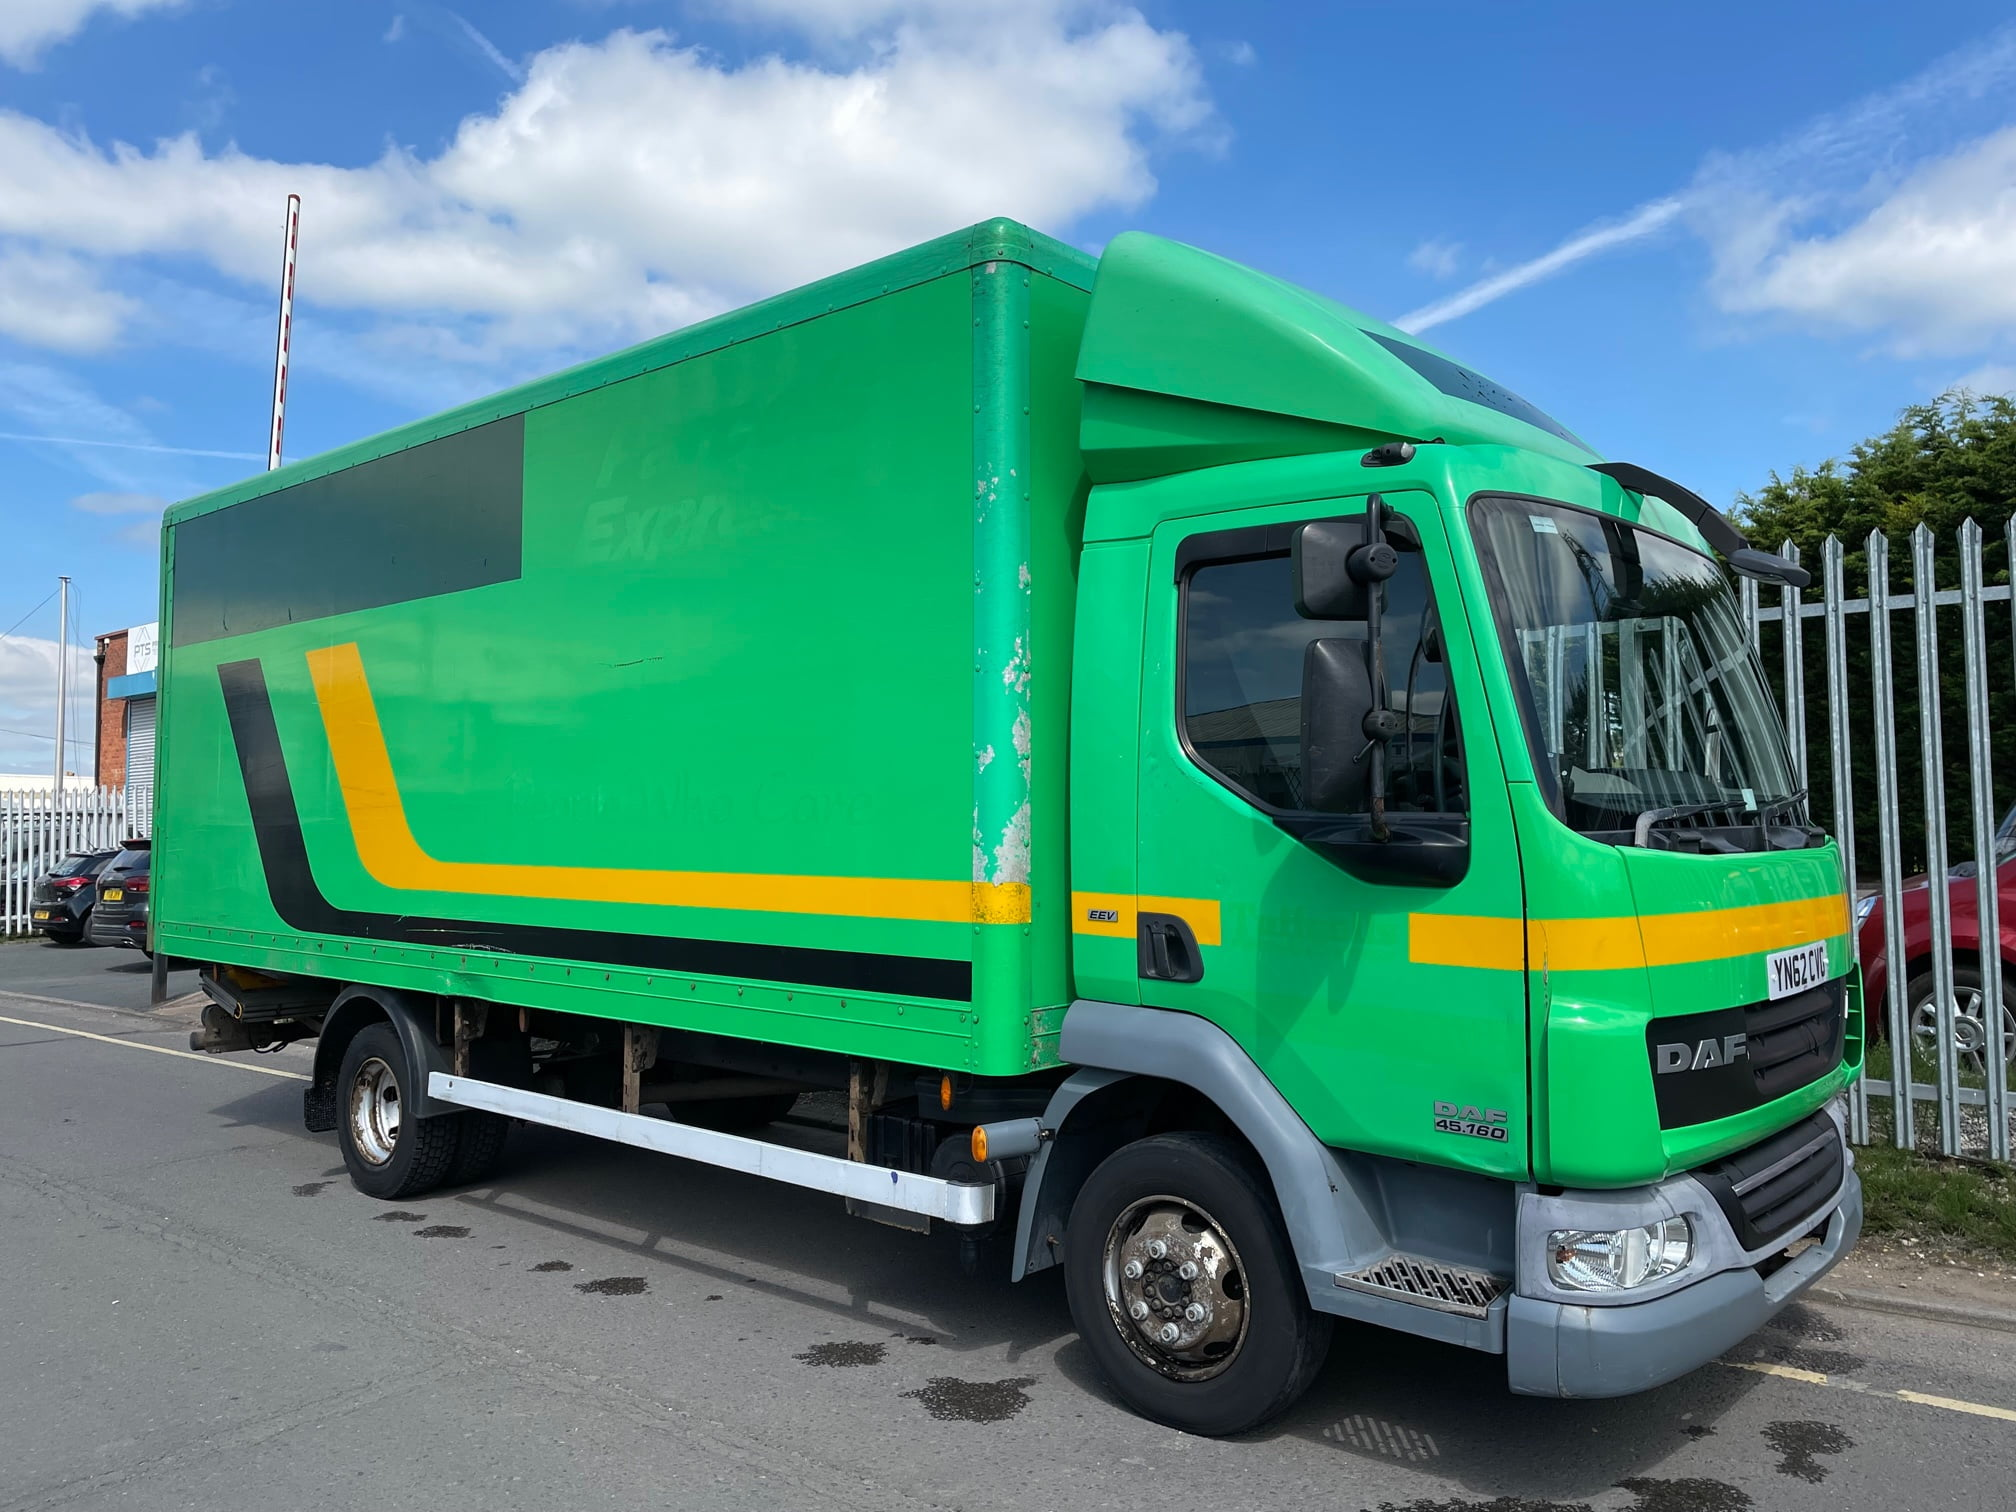 2012 (62) DAF LF, Euro 5, 160bhp, Automatic Gearbox, Day Cab, Cruise Control, Steering Wheel Controls, 6.89m Body Length, MBB Palfinger Tuckunder Tailift, 374,179km.